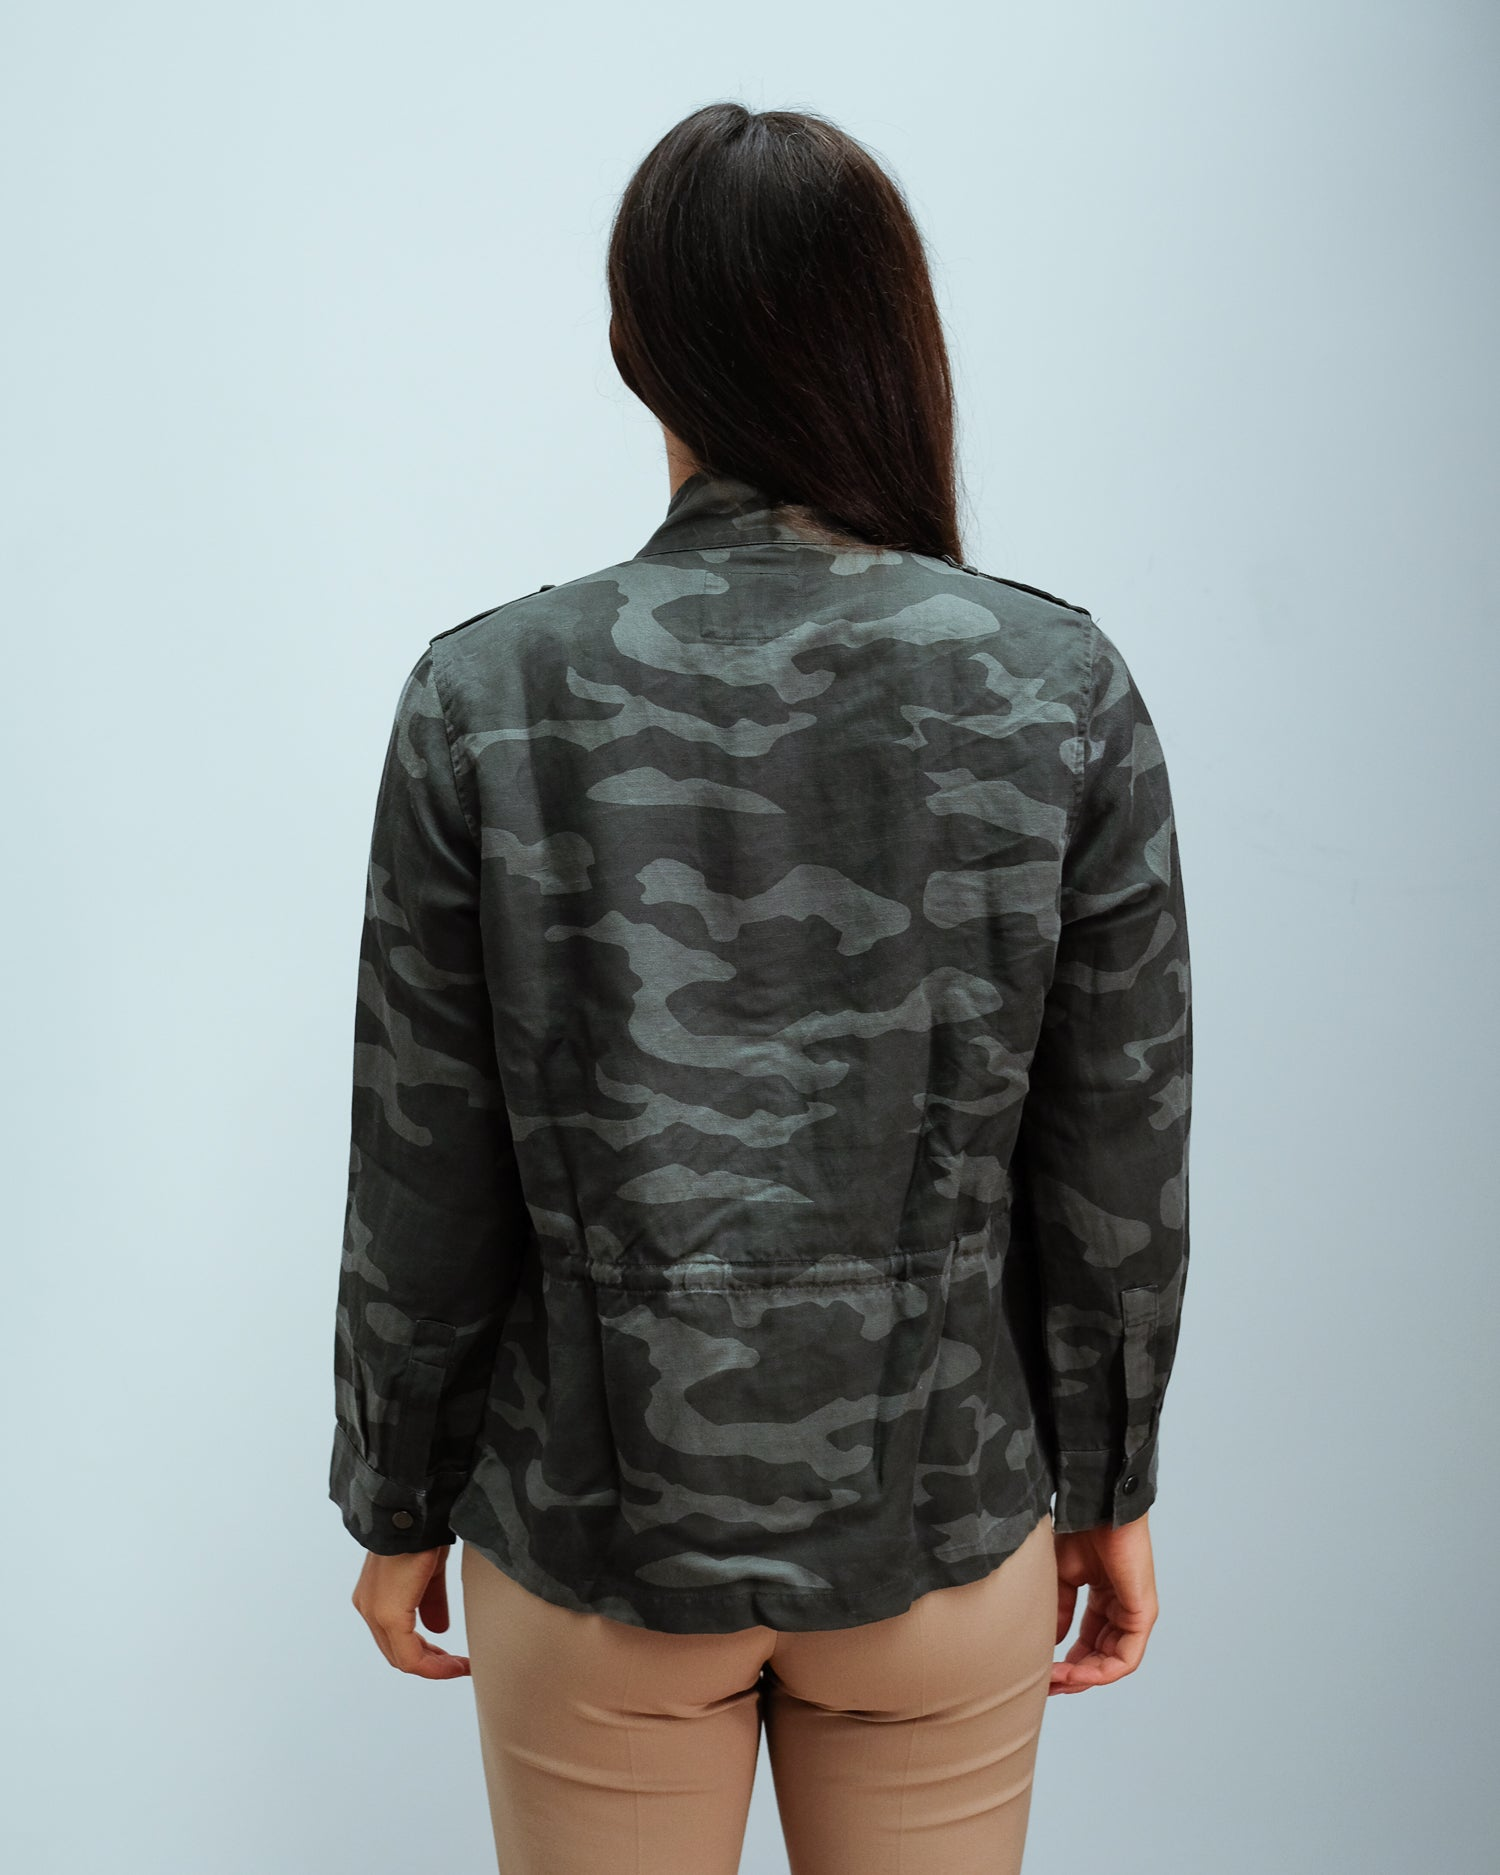 RAILS Trey Jacket in Charcoal Camo